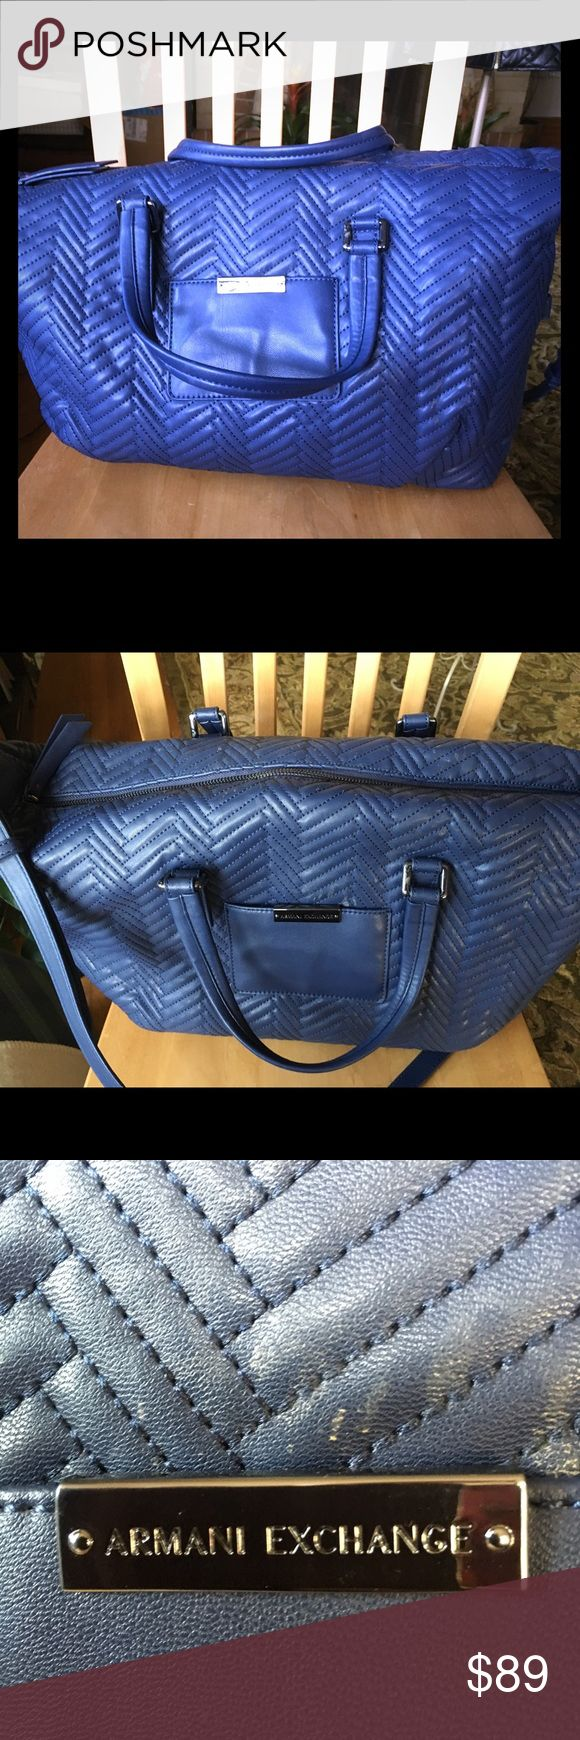 Armani Exchange Vegan Blue Bag Gently Pre-Loved Bag...very spacious.  Handles and shoulder or crossbody adjustable strap.  Inside pocket and compartments for phone or other essentials. Armani Exchange Bags